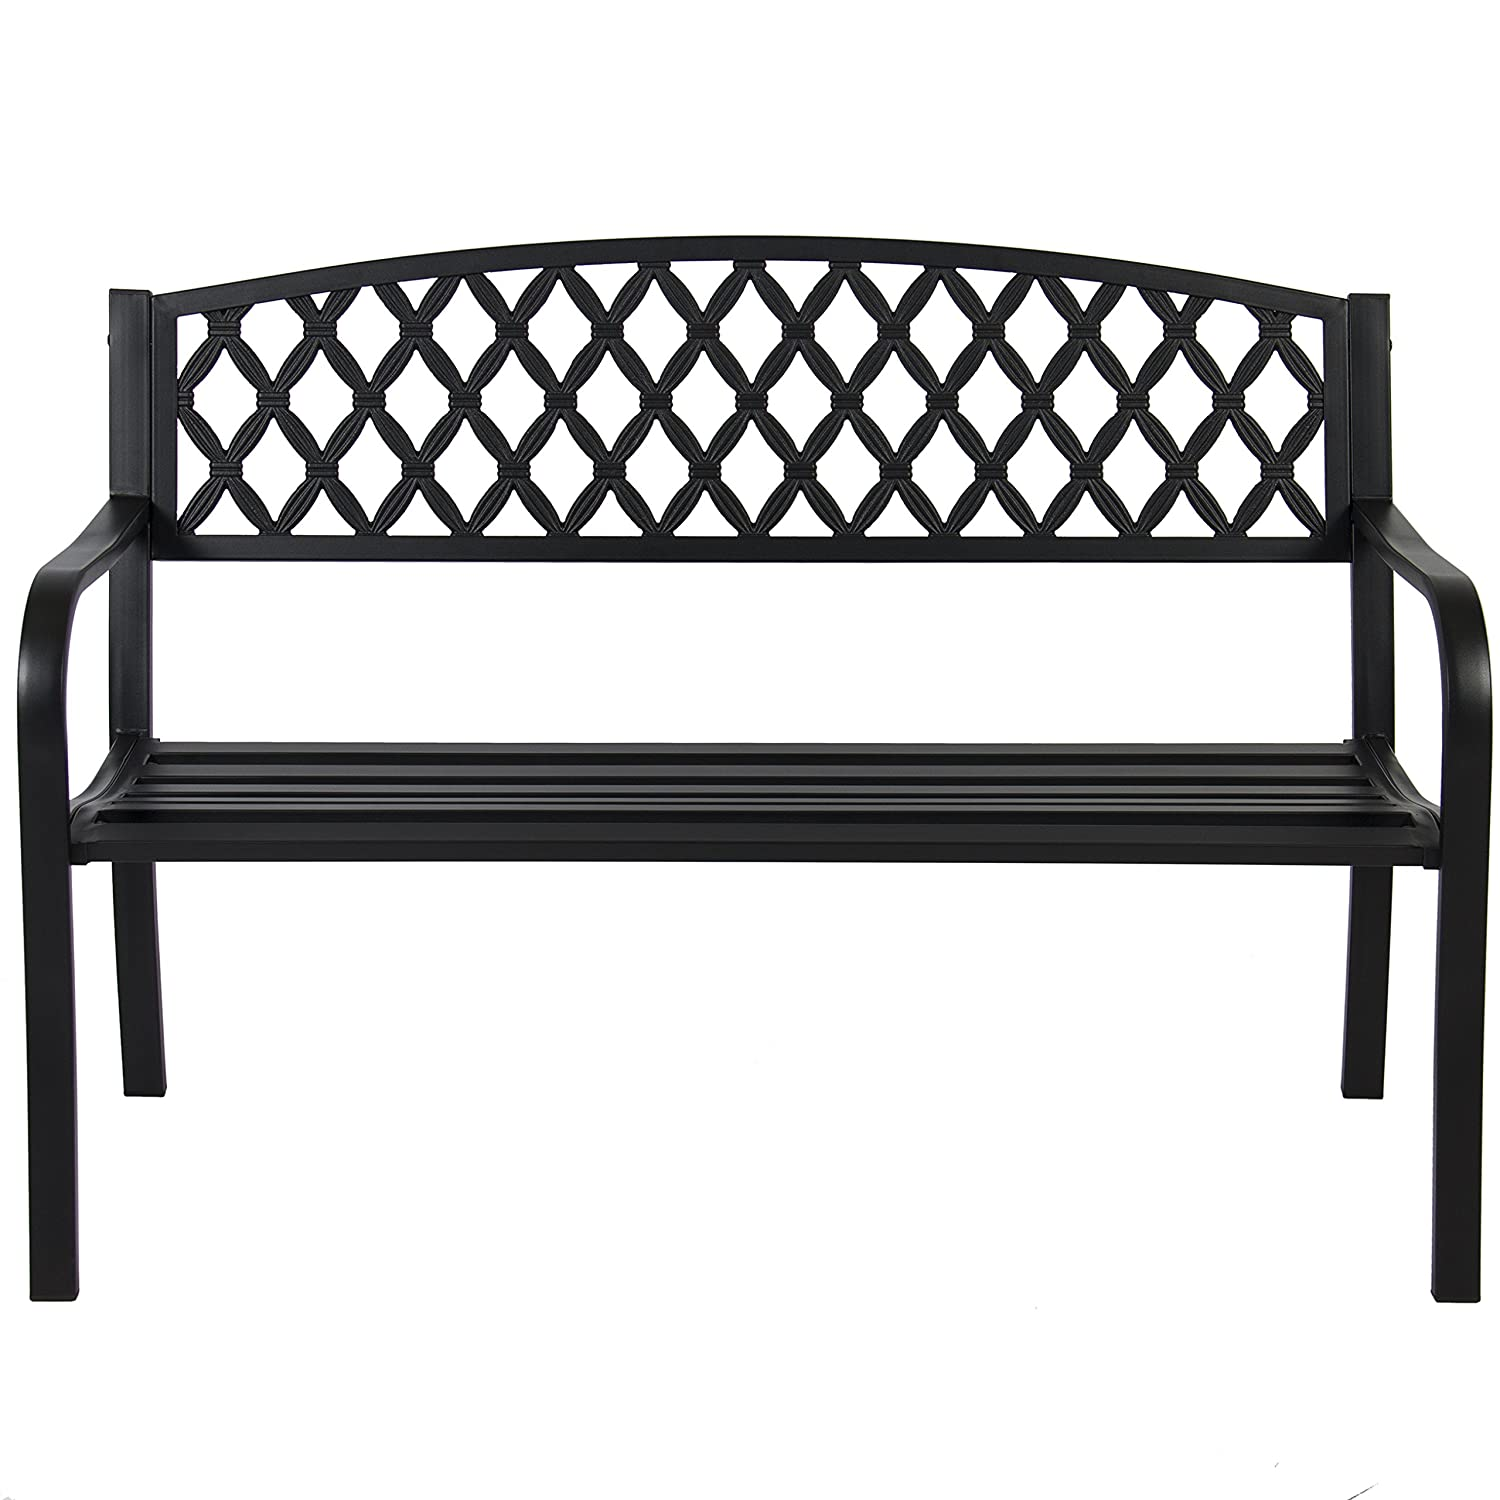 emu powder wxhxd en garden pid ambientedirect segno coated bench com white